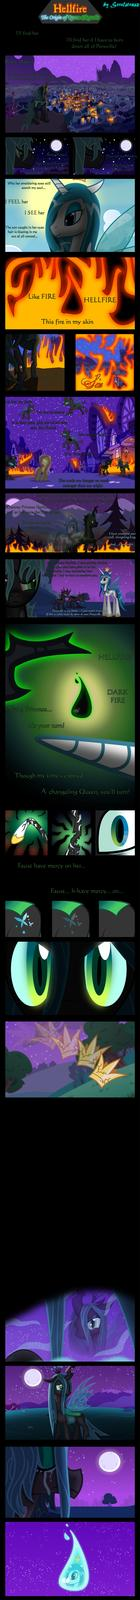 Hellfire: The Origin of Queen Chrysalis